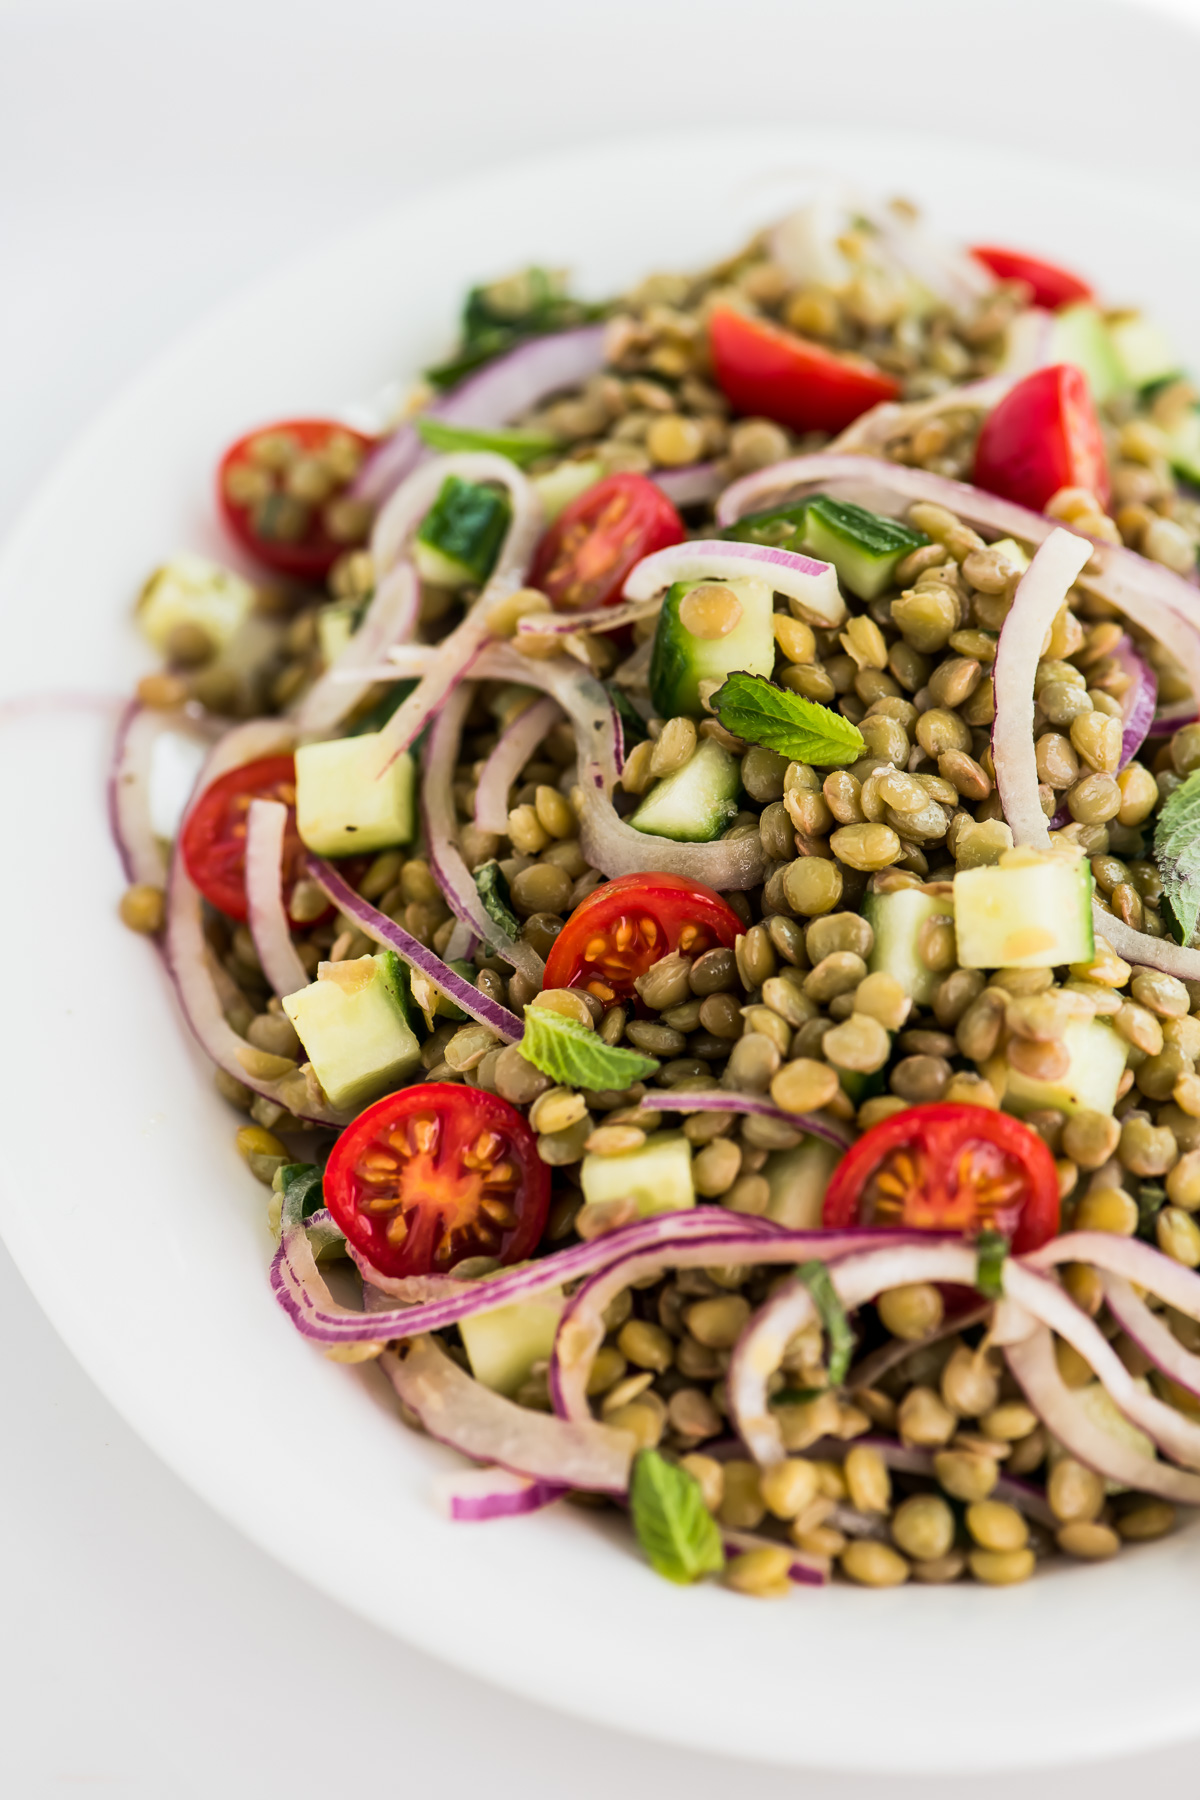 Lentil and cucumber salad with tomatoes and onions